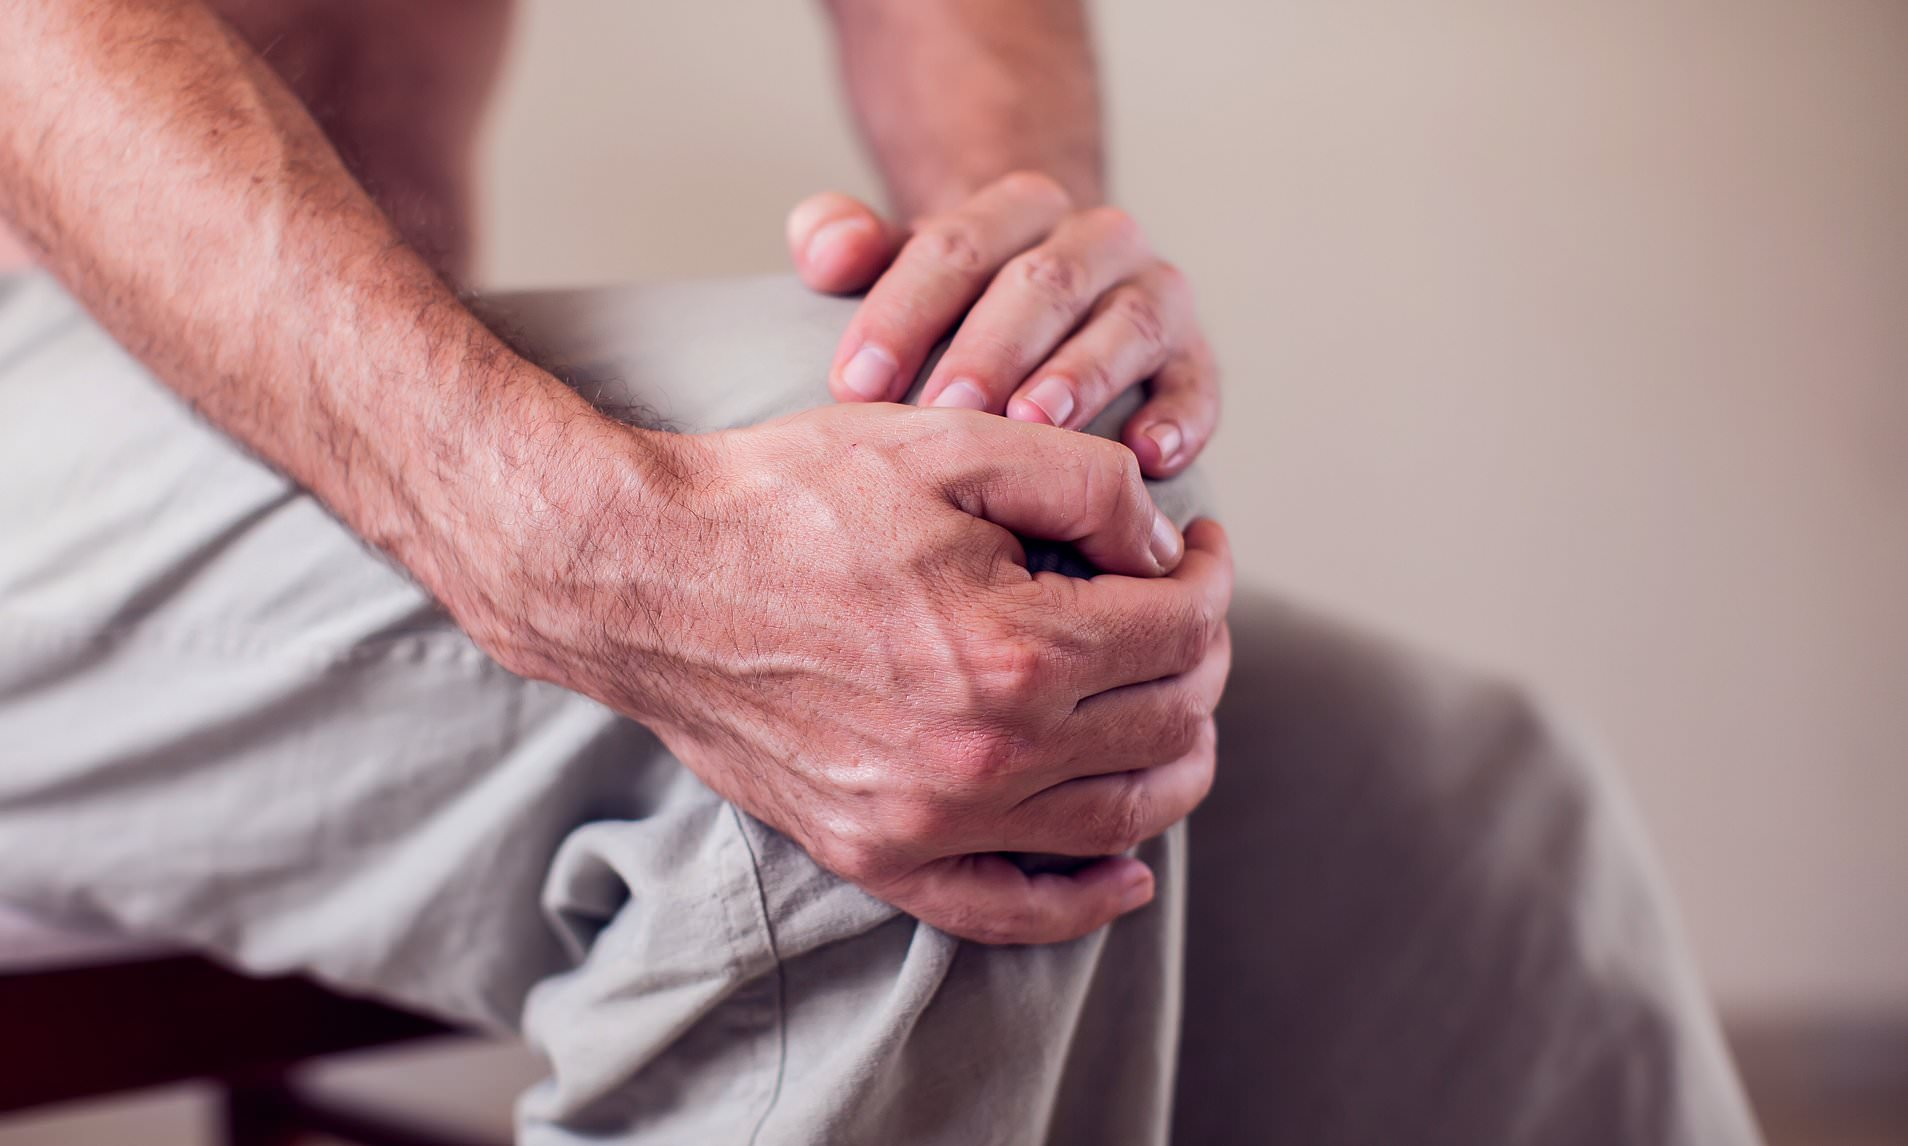 Cortisone injections may accelerate arthritis, study finds | Daily ...